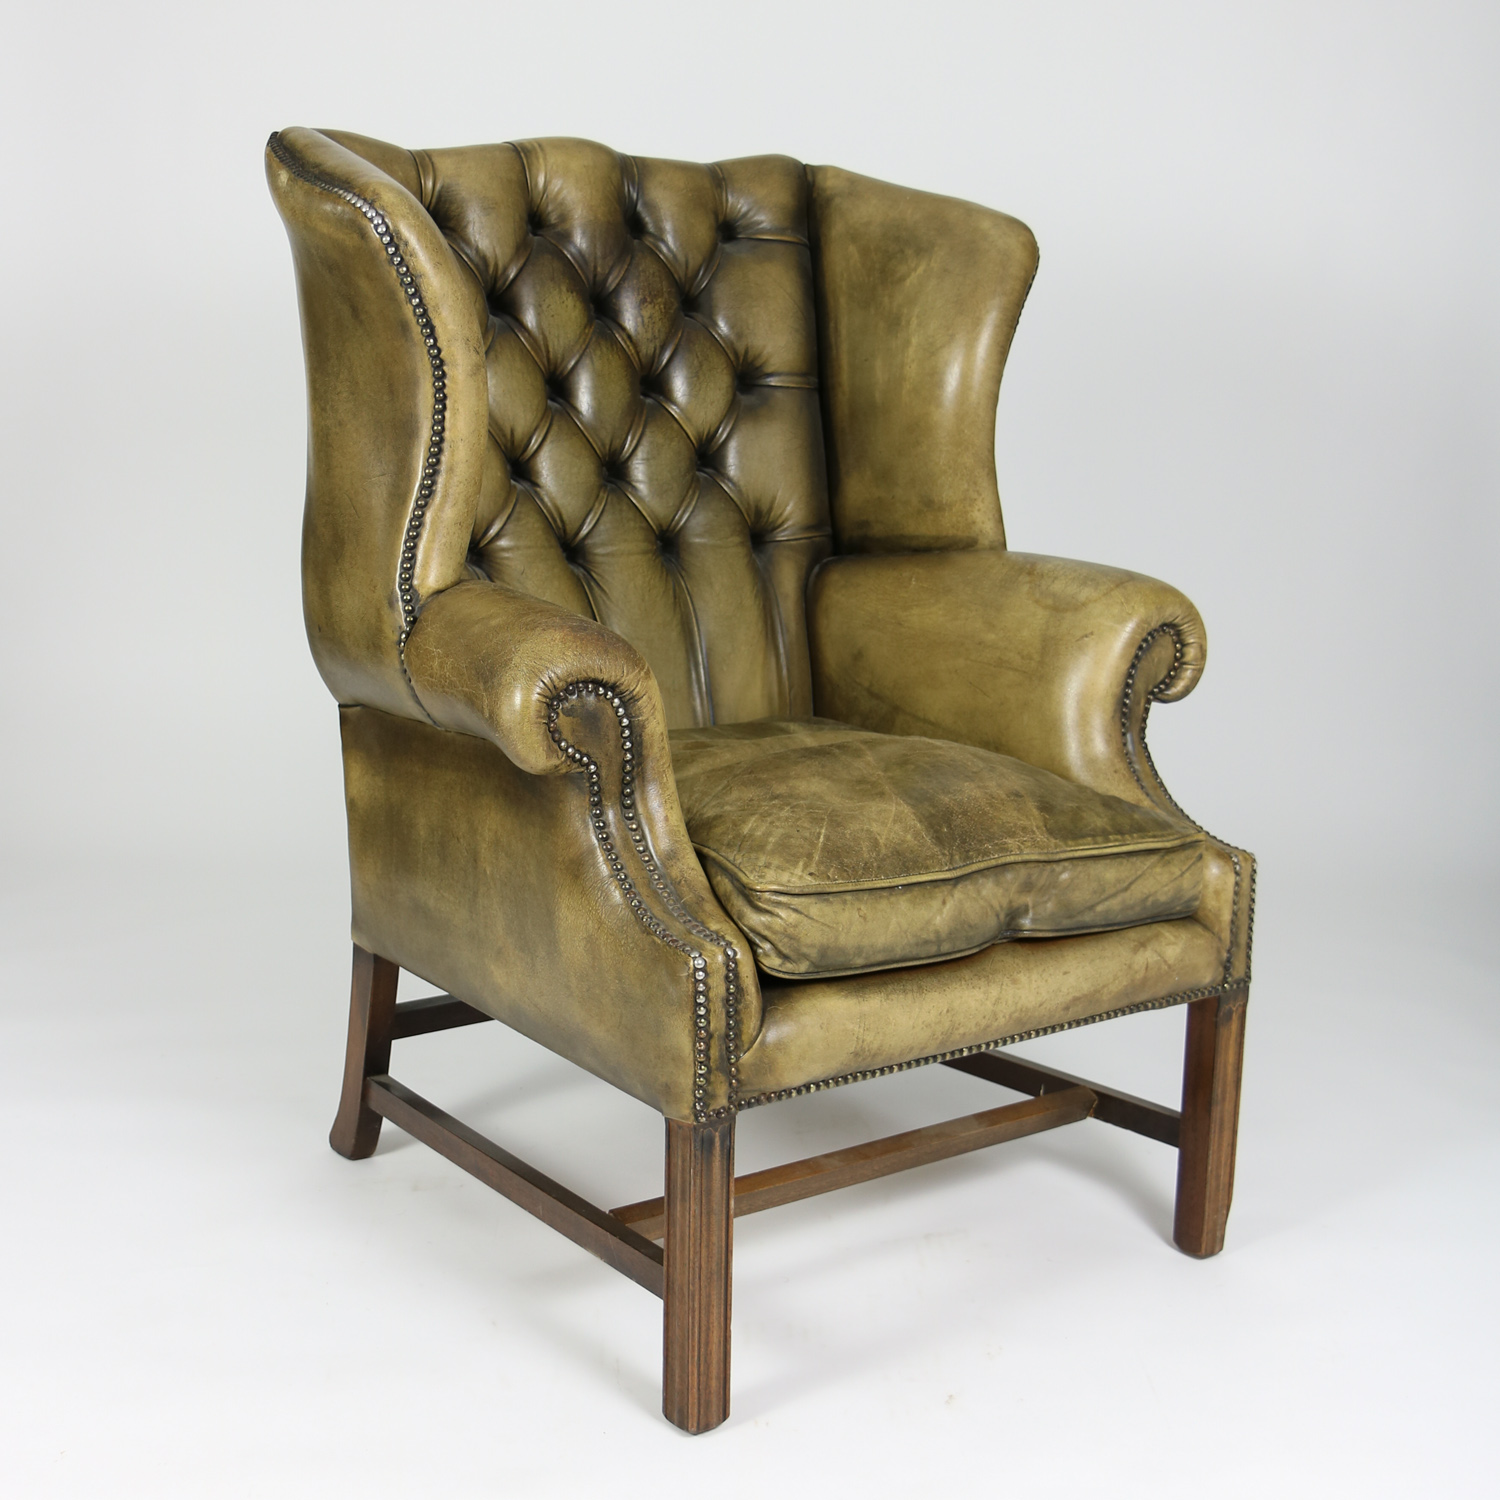 Wingback Tufted Chair Handsome Mahogany And Original Tufted Green Leather Wing Chair English Circa 1880